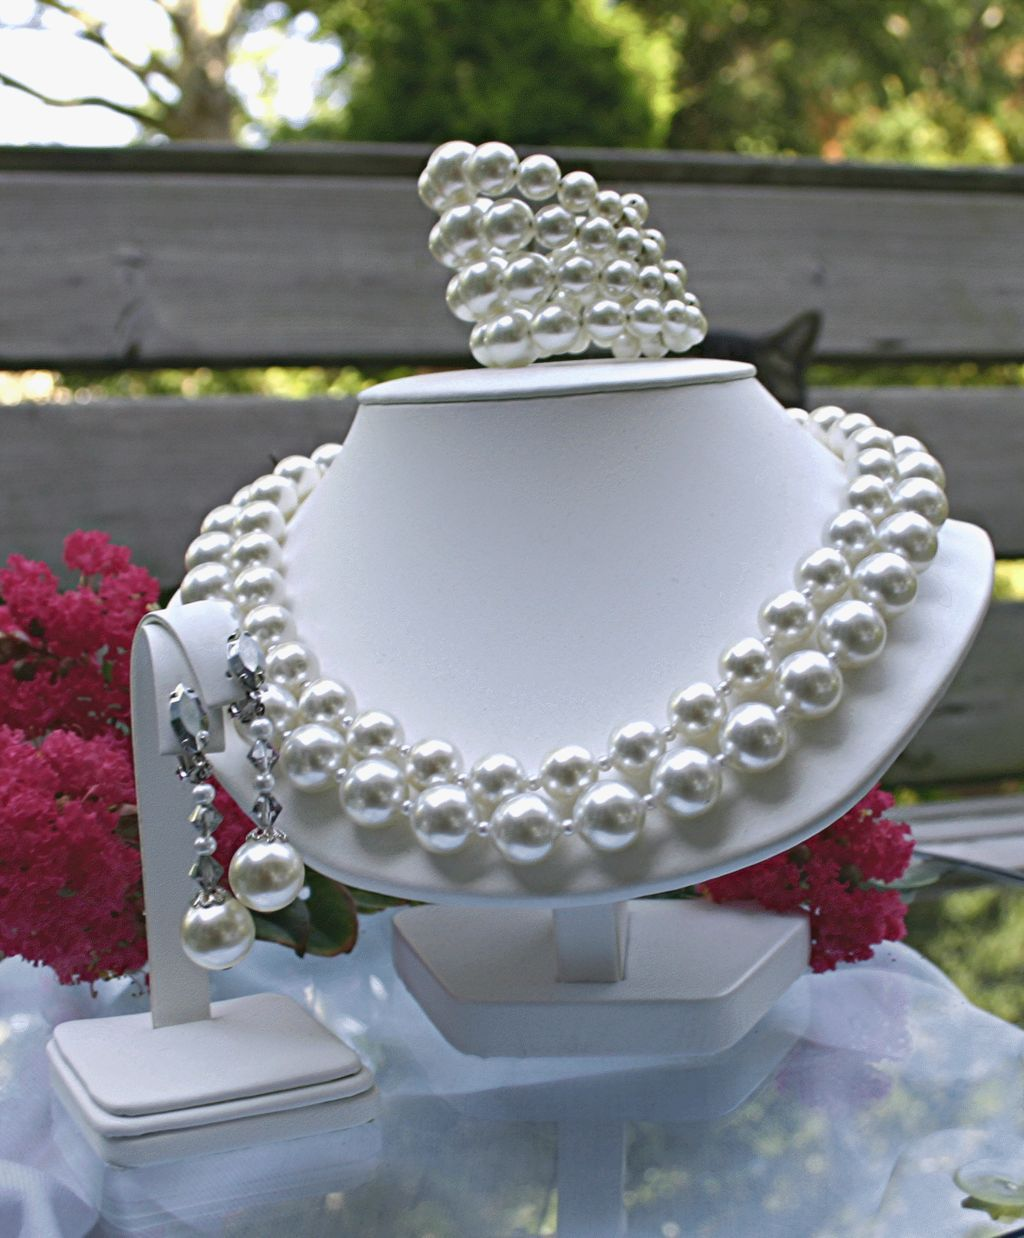 C1960, Signed Lewis Segal California, A Full Parure, Imitation Pearl